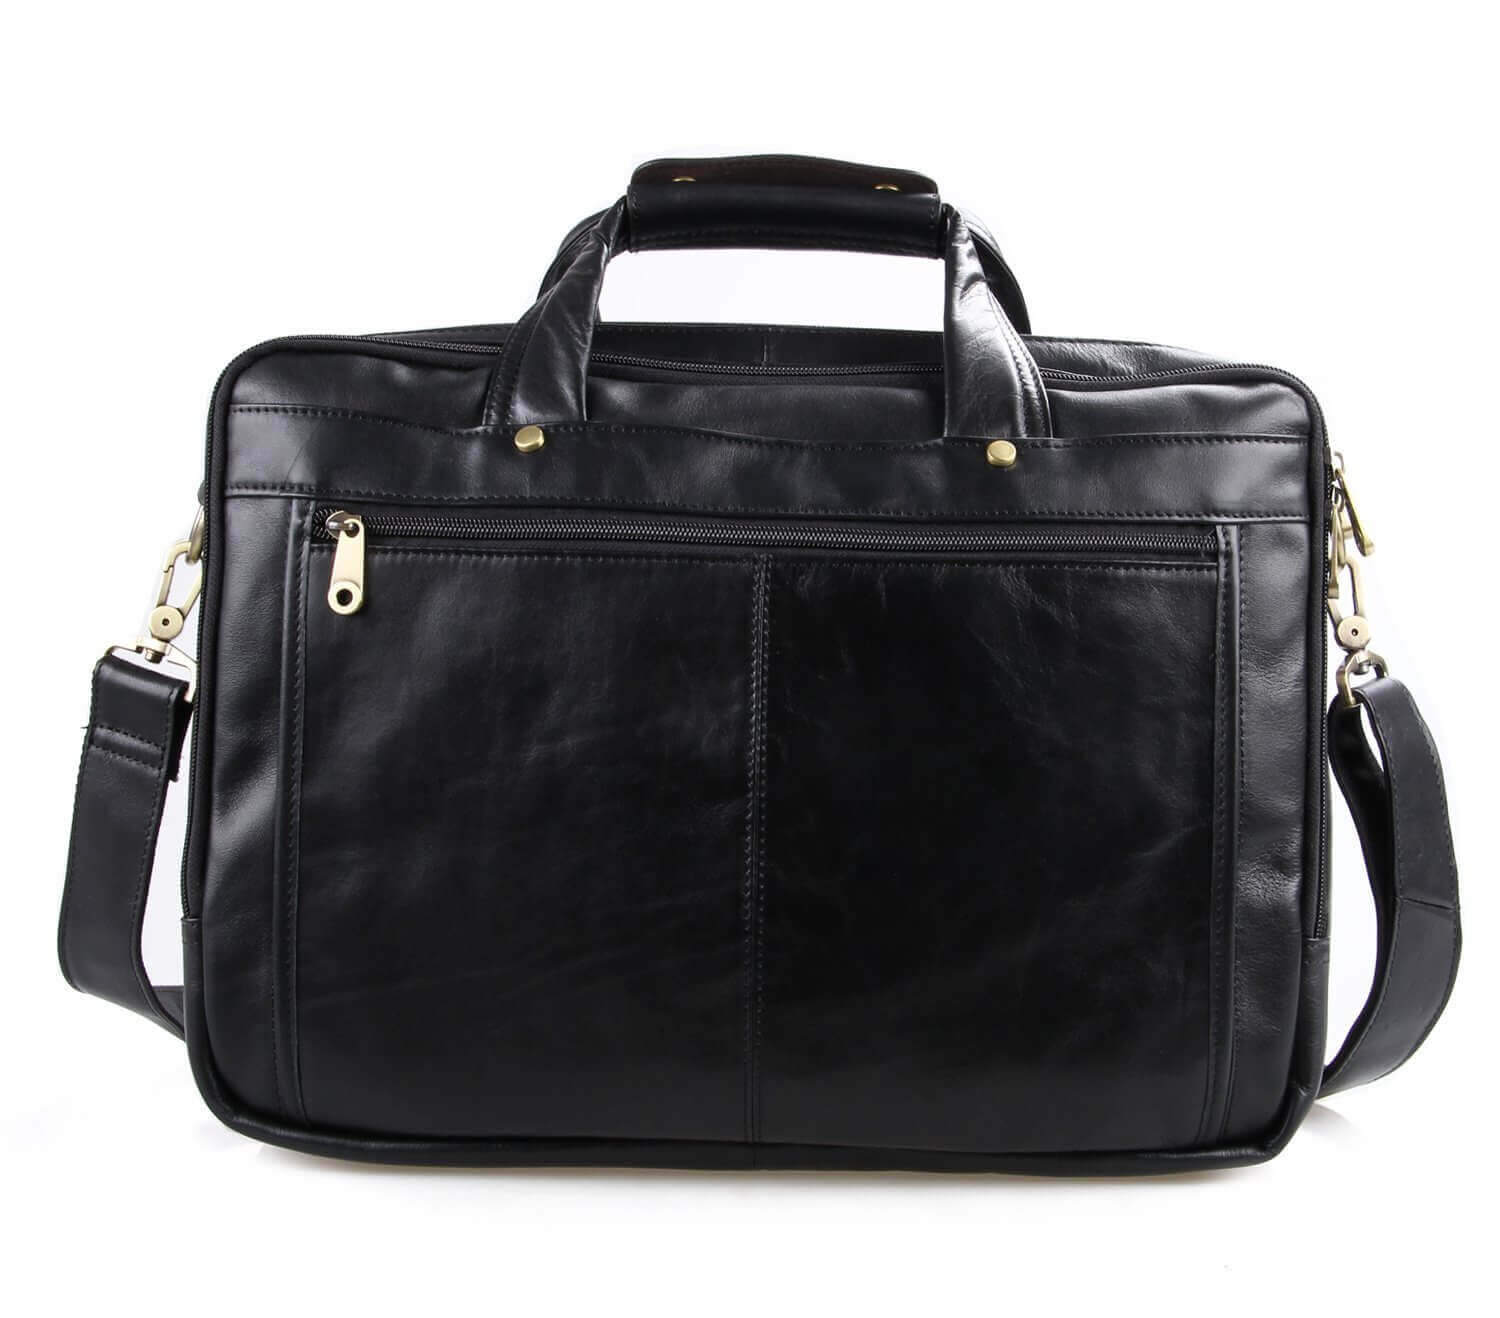 Texbo Leather Briefcase Shoulder Bag - best leather briefcases for men